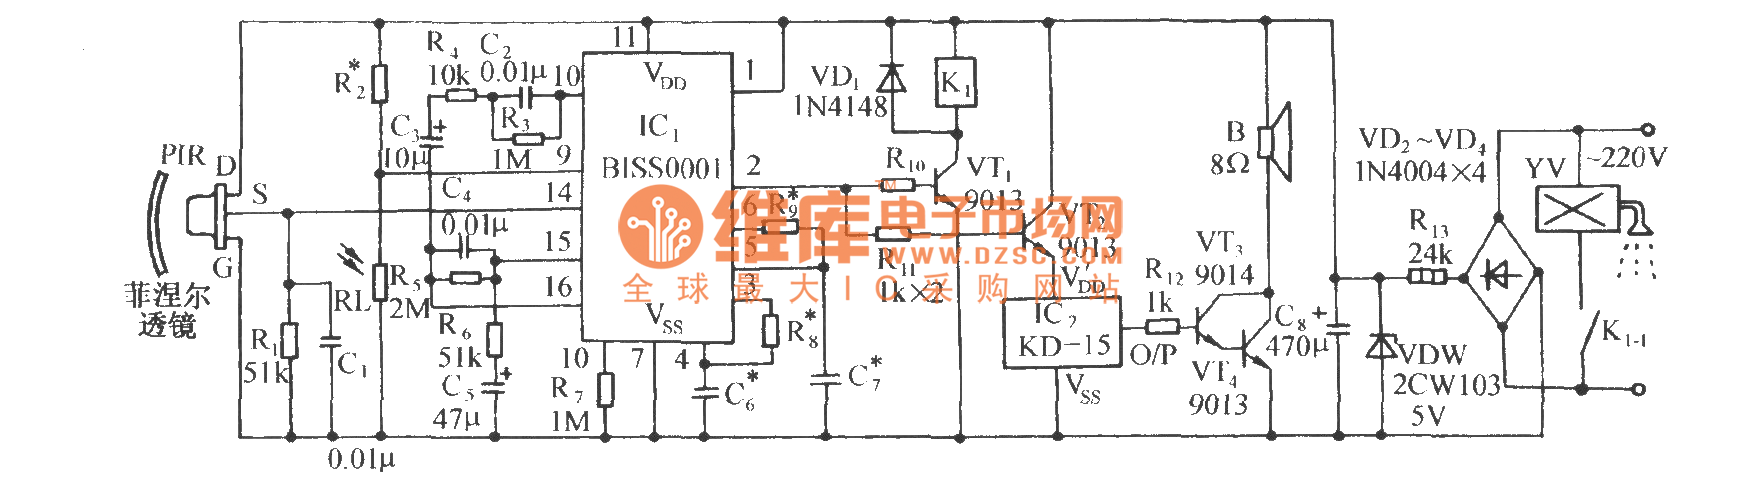 Infrared Sensor Automatic Sprinkler Control Circuit Diagram Using Basictriacswitches Controlcircuit Seekiccom Biss0001